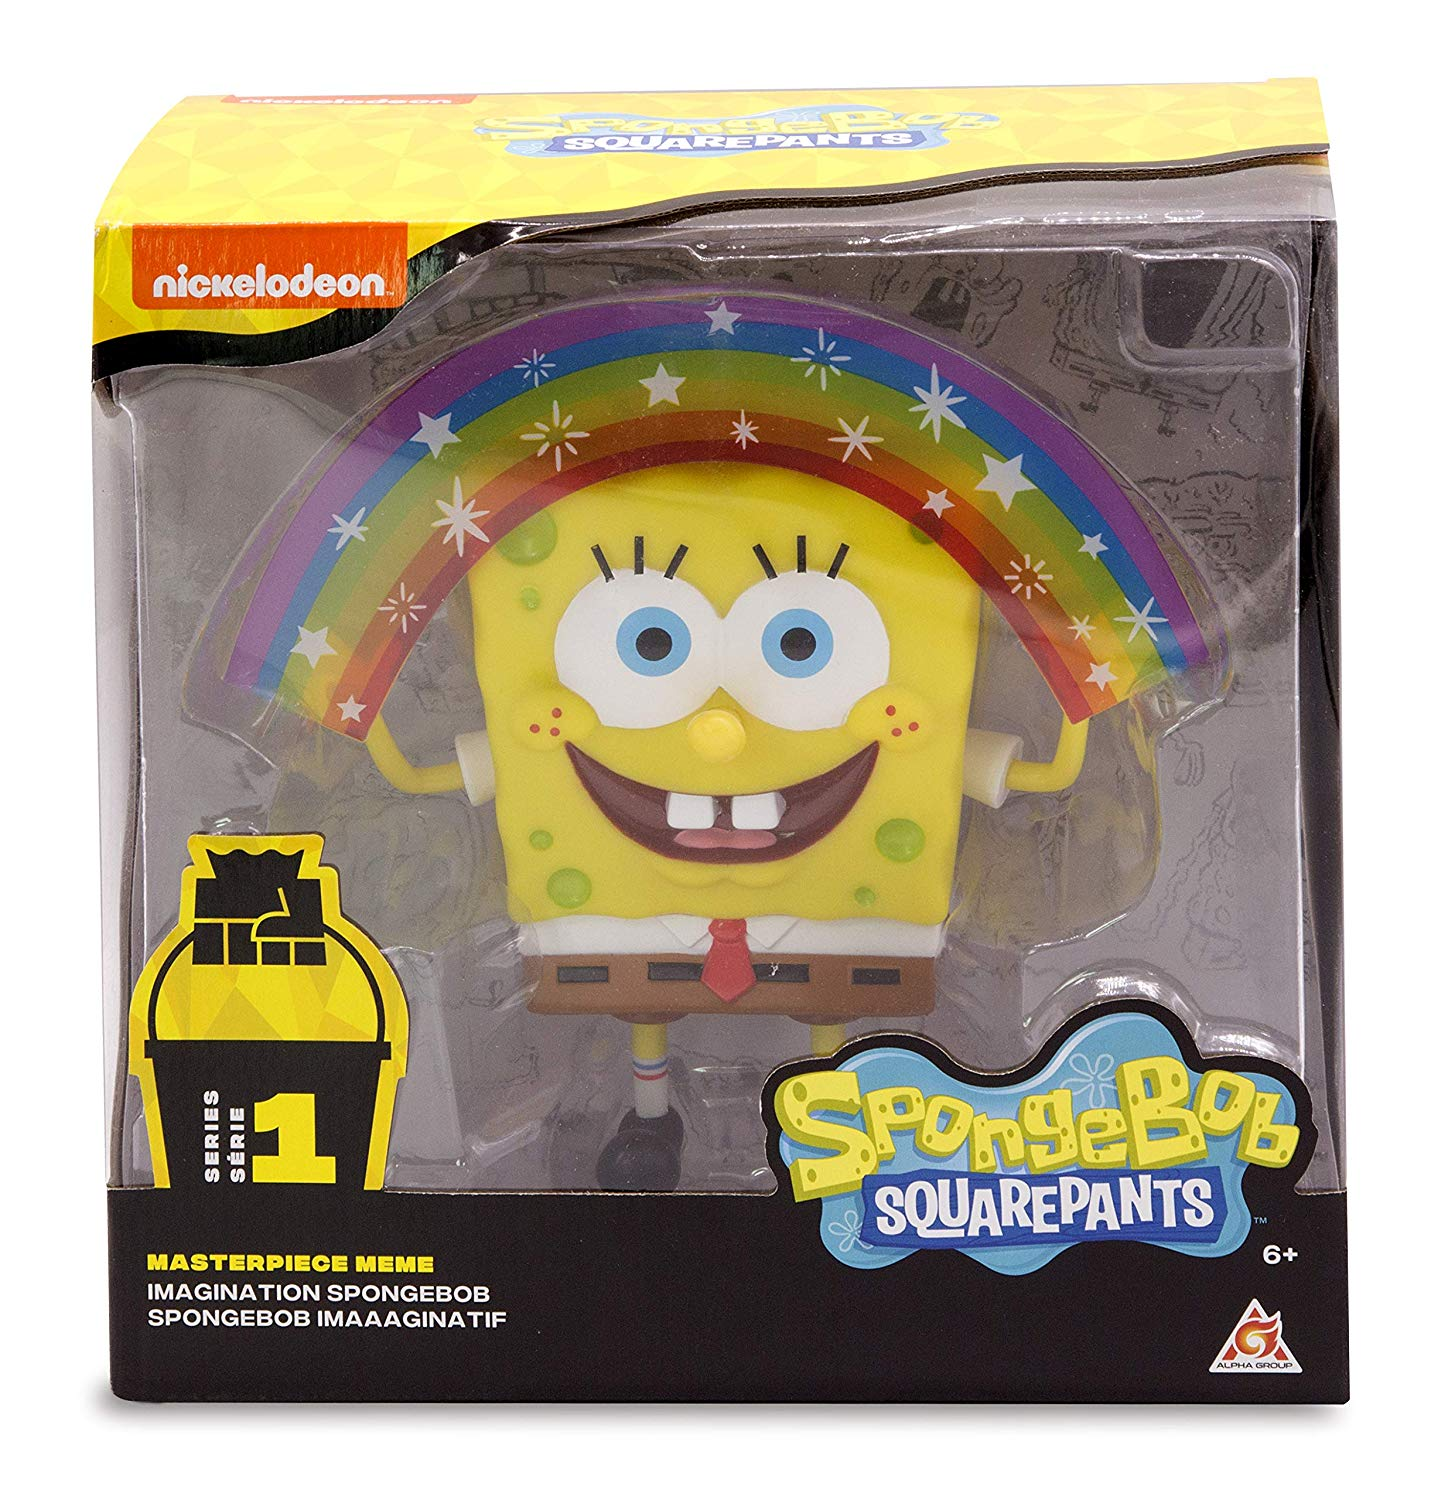 On a related note funko unveiled some new spongebob squarepants pop figures at london toy fair earlier this year and they will be shipping very soon